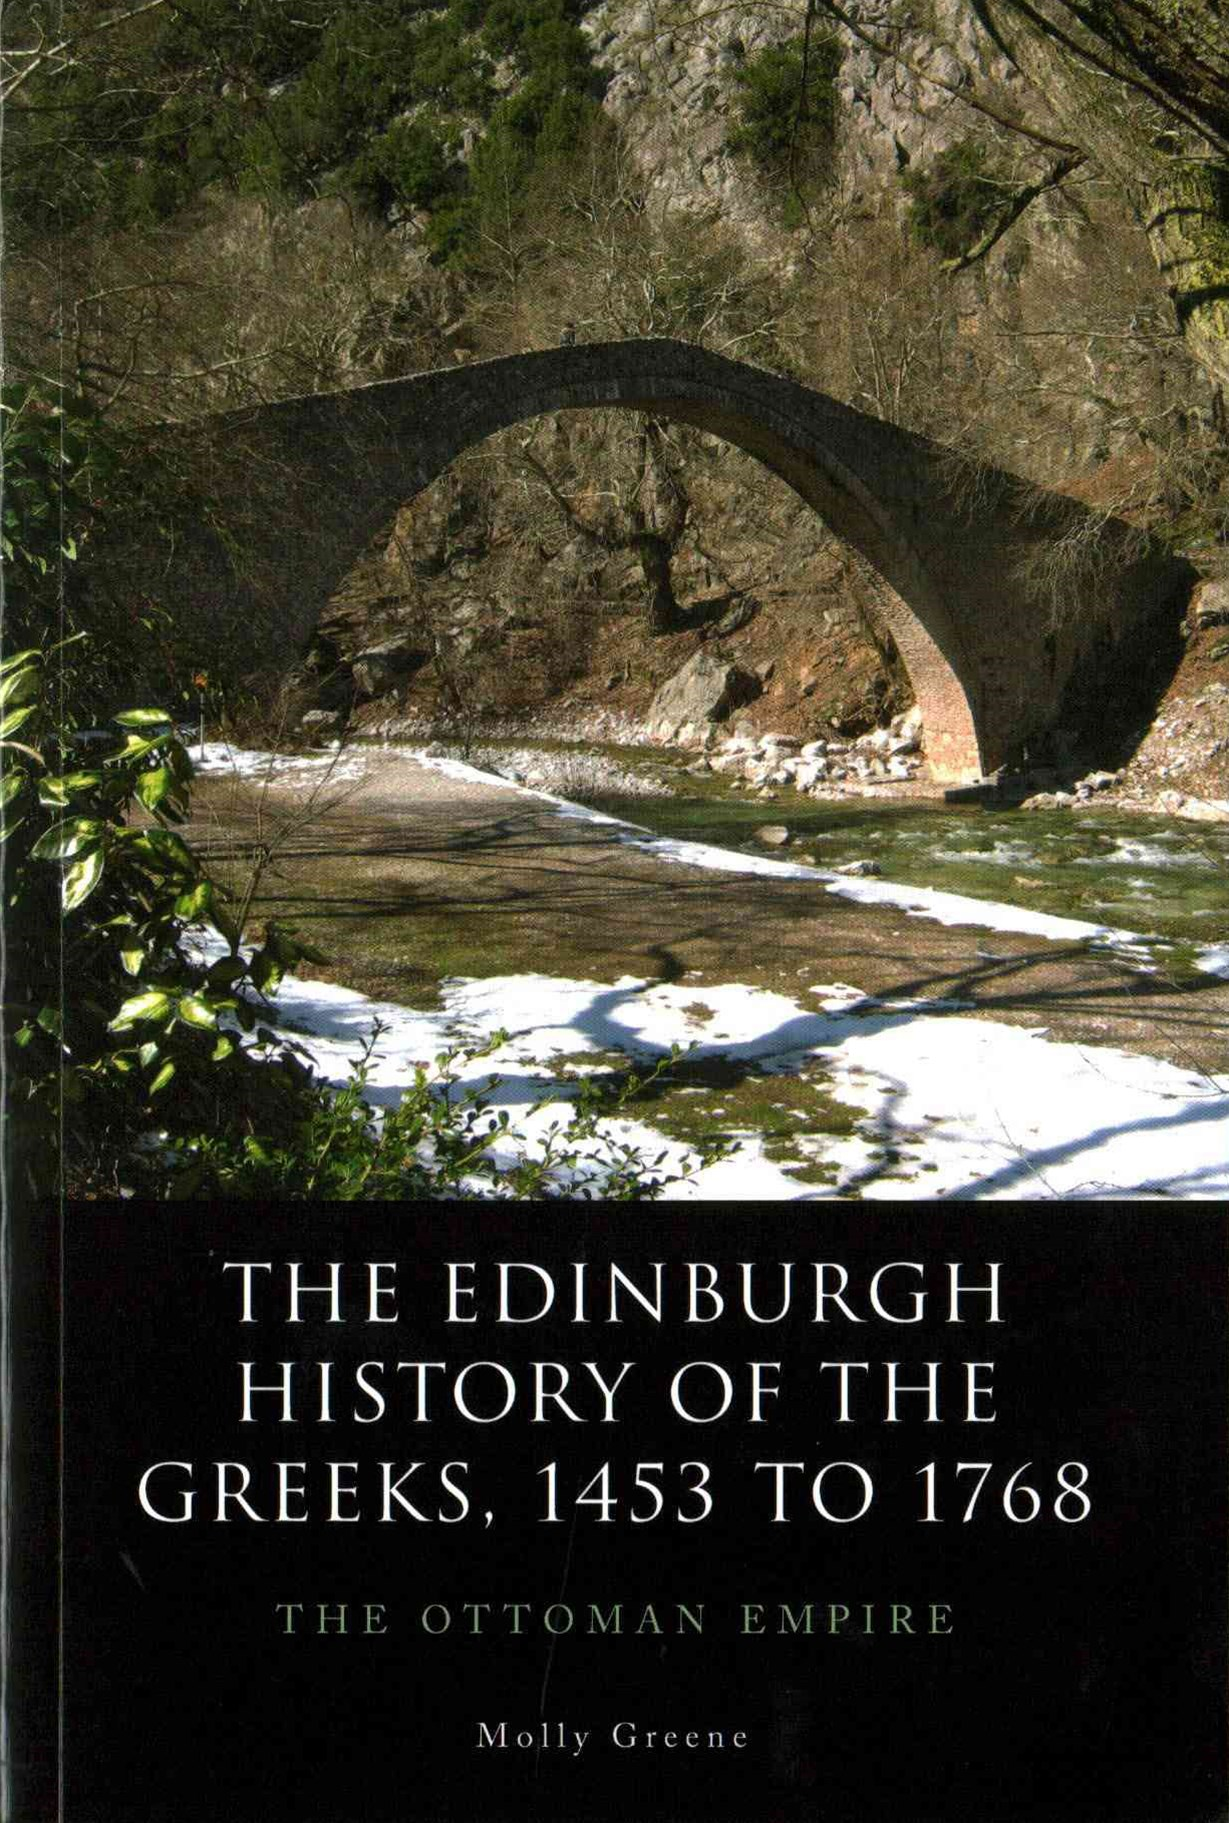 The Edinburgh History of the Greeks, 1453 to 1768